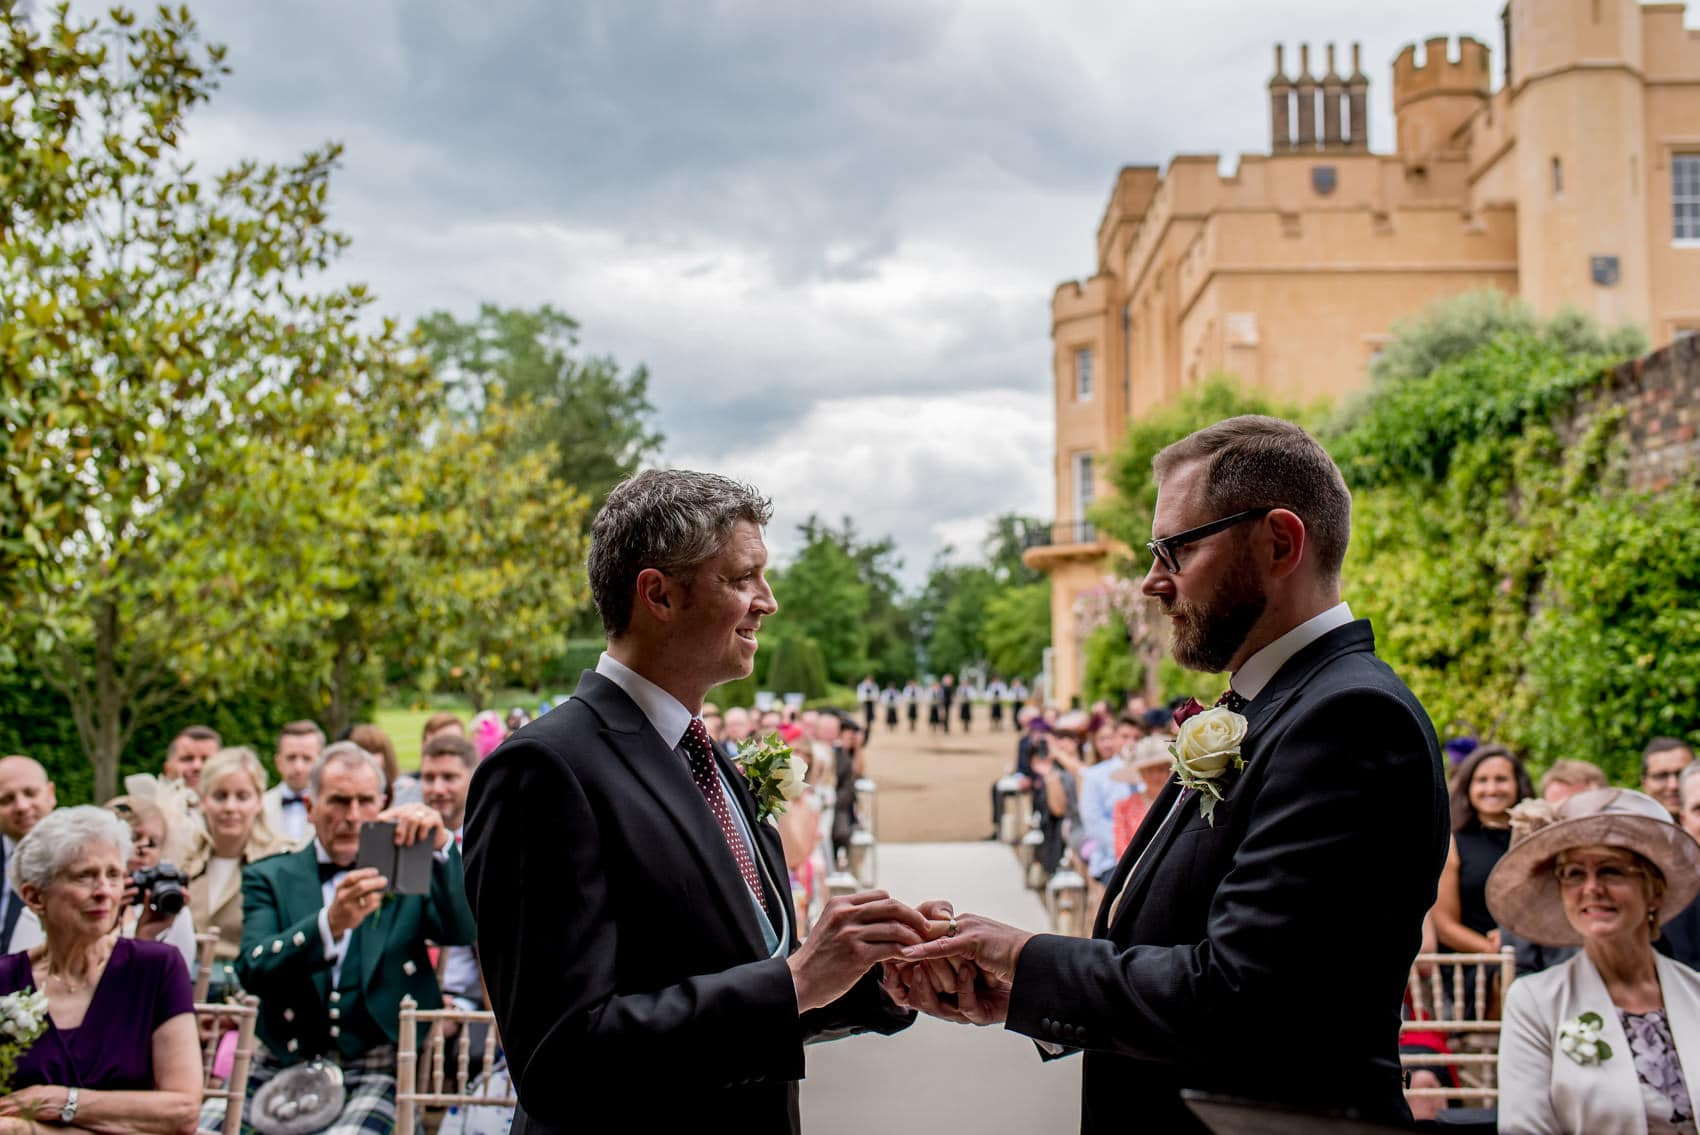 a wedding ceremony at Ditton Park